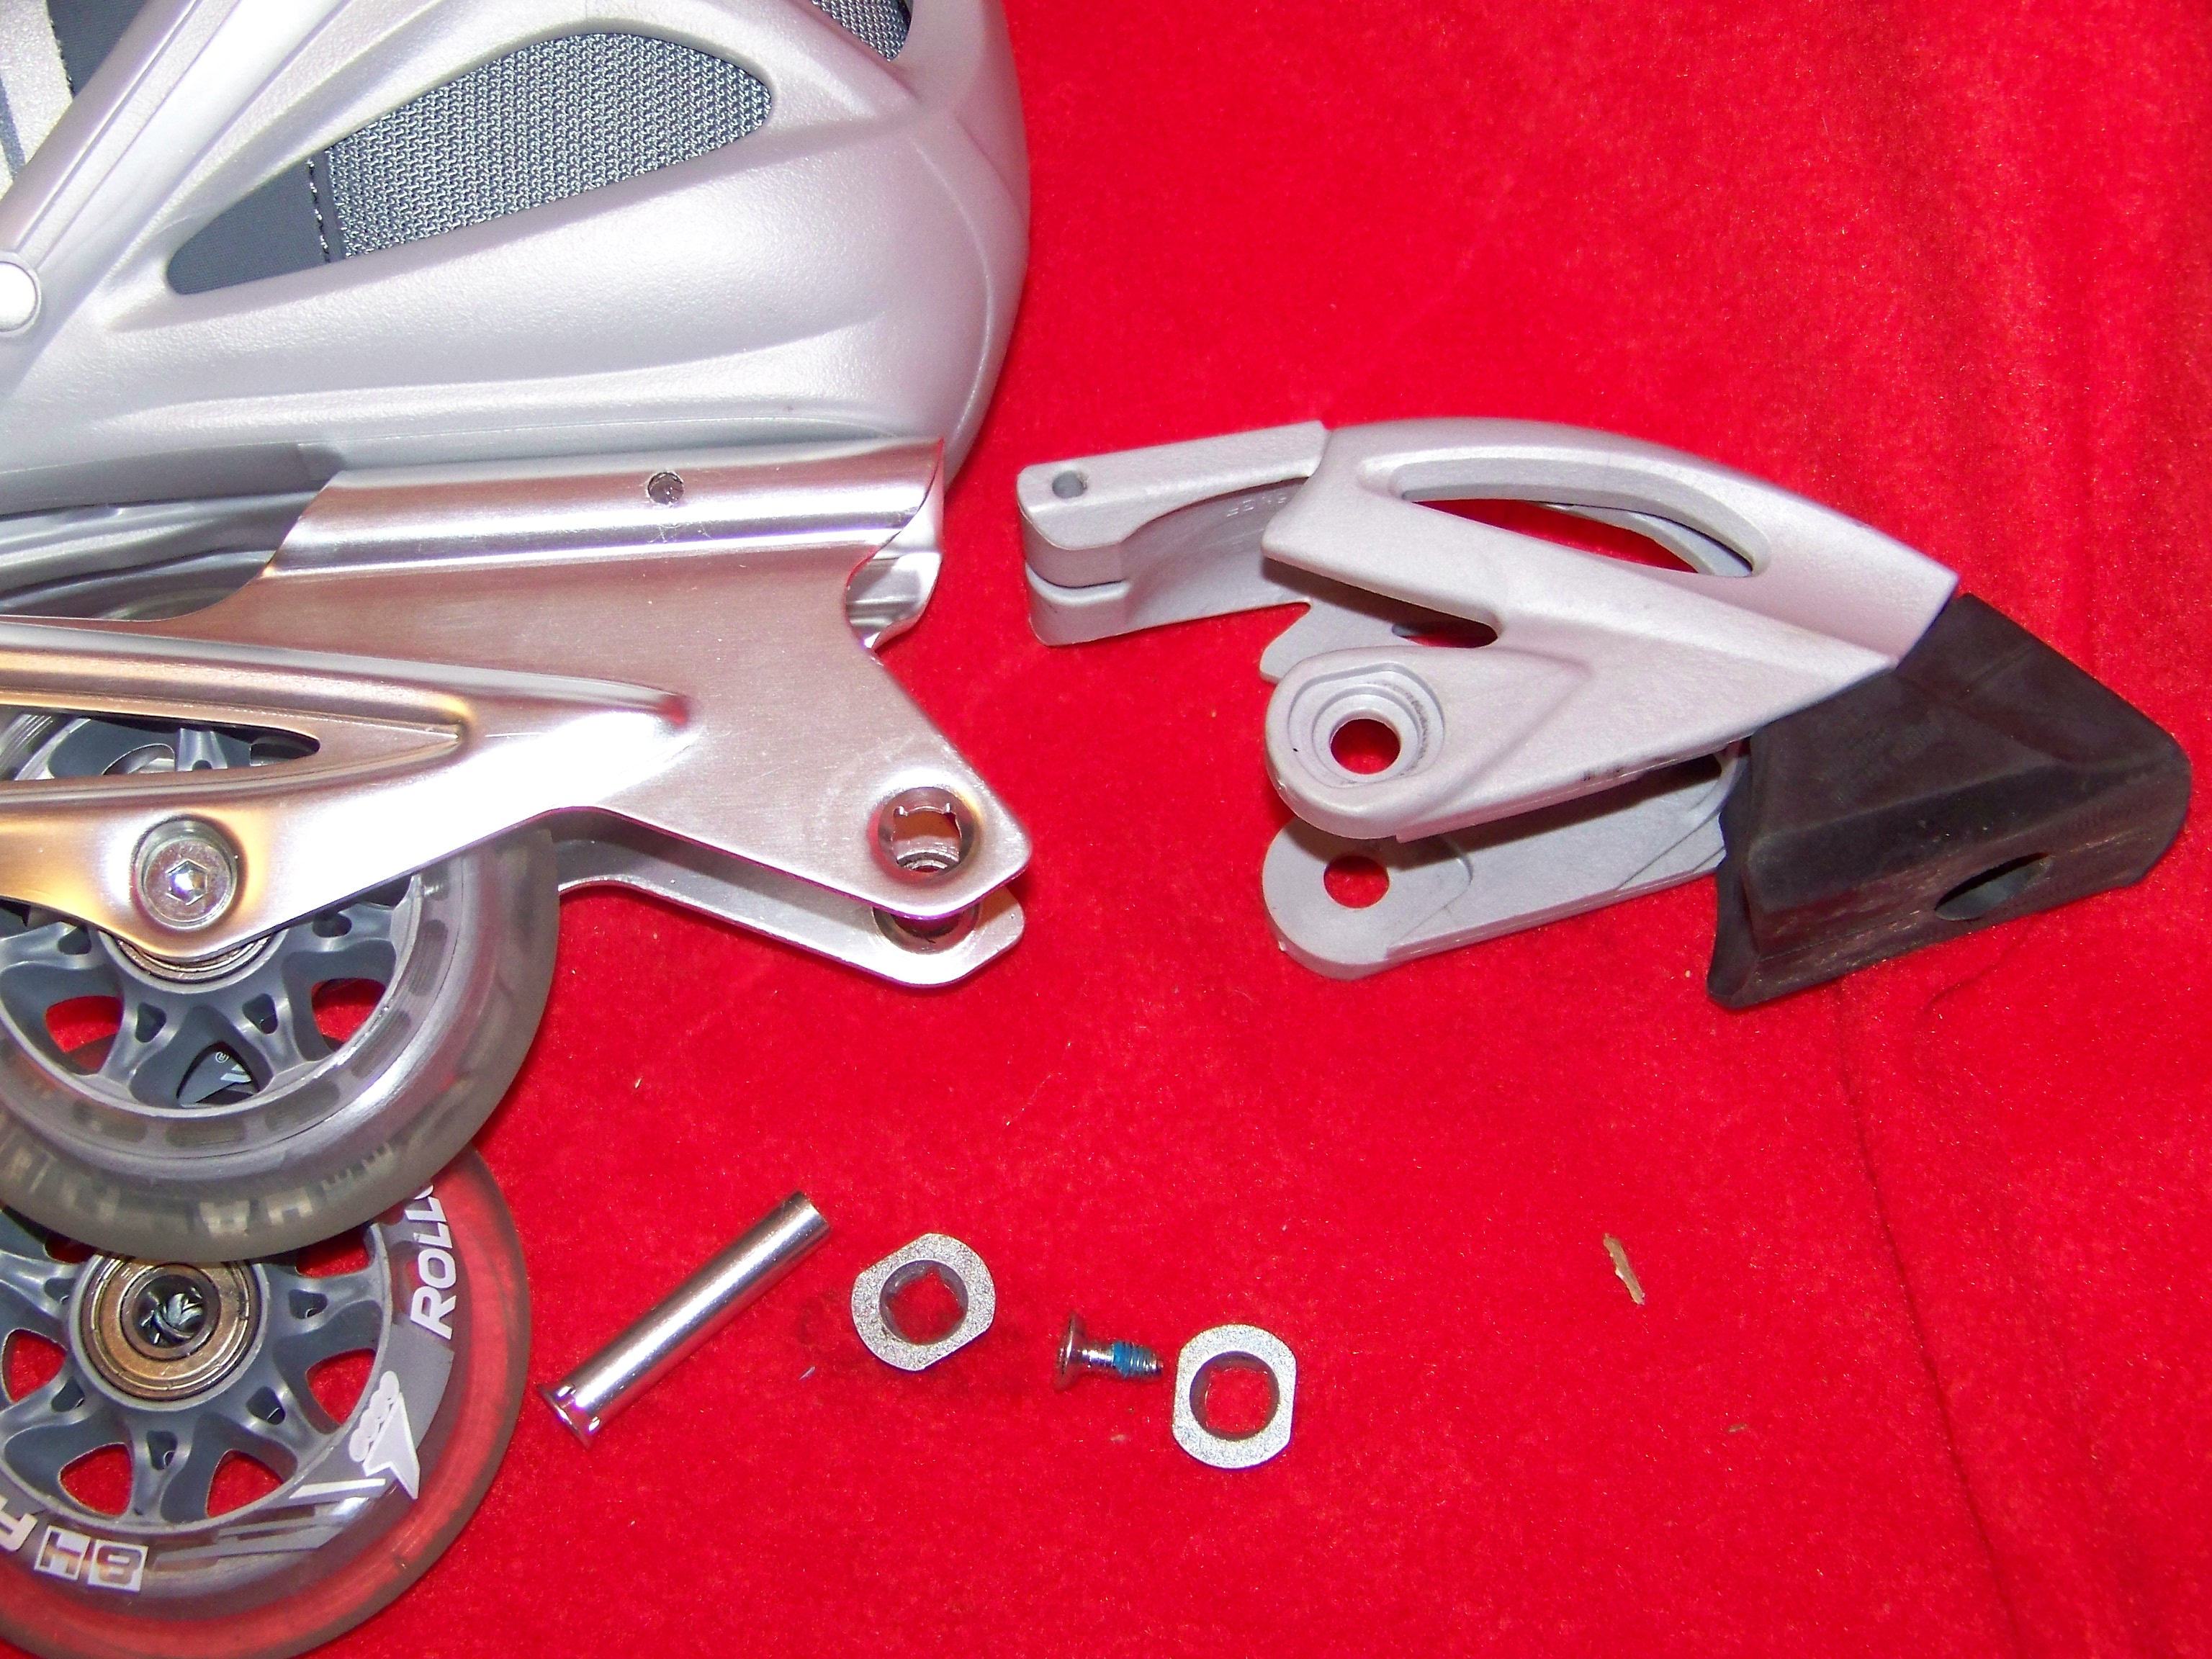 Right skate's disassembled brake and wheel hardware